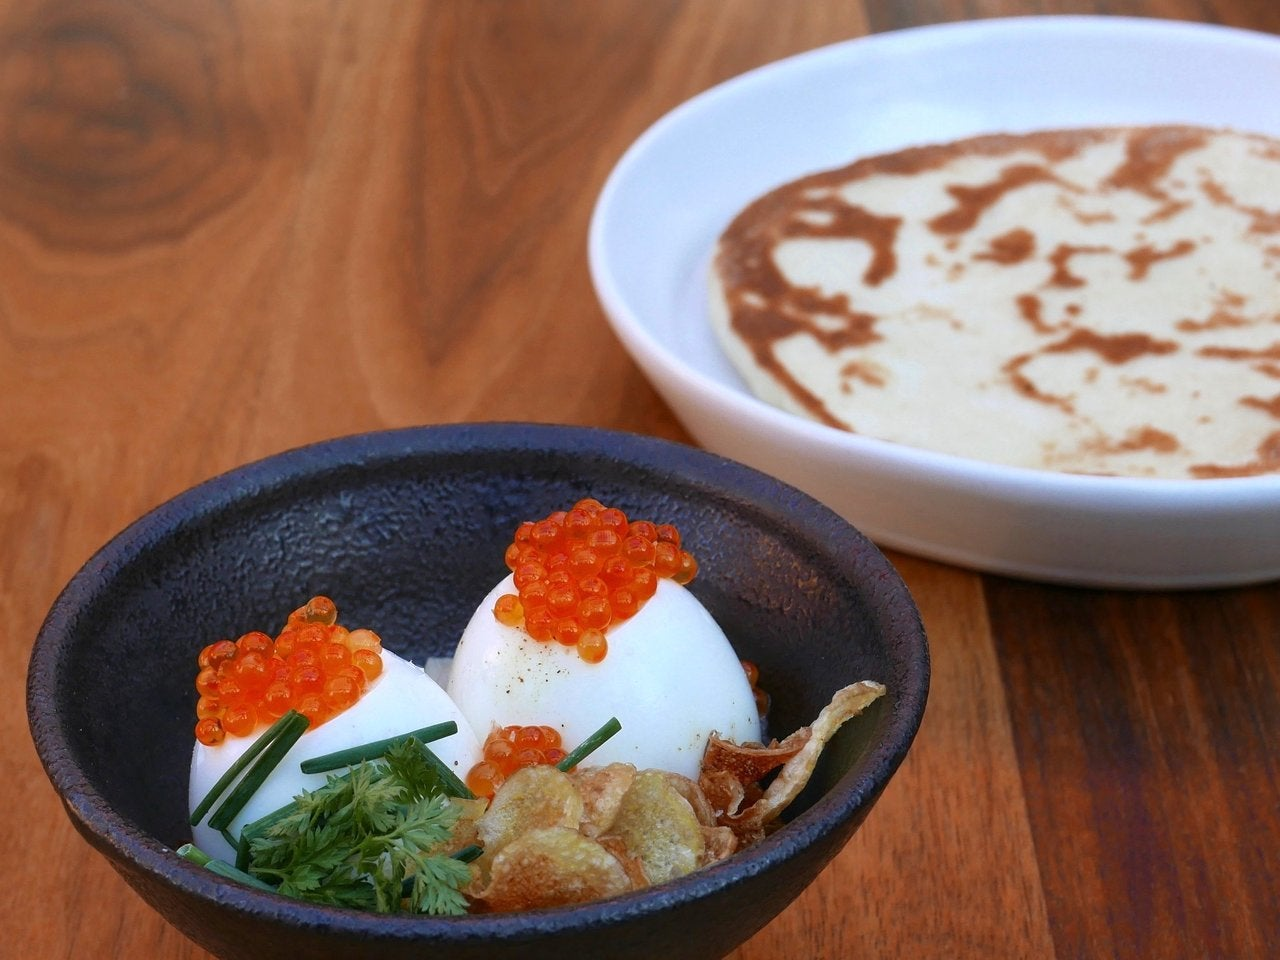 Bing Eggs with Smoked Trout Roe at Majordomo